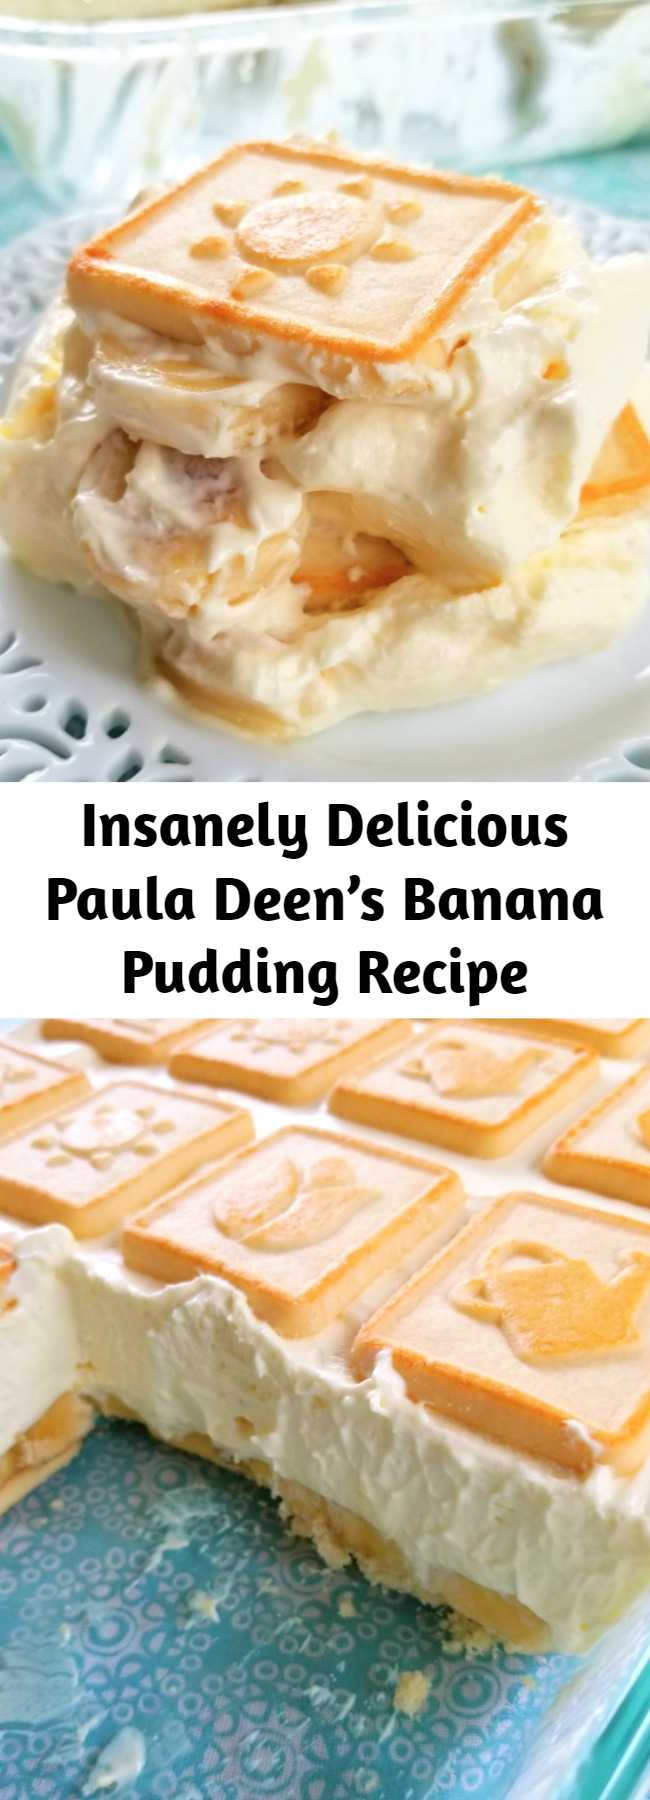 Insanely Delicious Paula Deen's Banana Pudding Recipe - This iconic layered dessert recipe for Banana Pudding with cream cheese and sweetened condensed milk isn't the Banana Pudding you grew up with but it's a classic for a reason - it's insanely delicious!